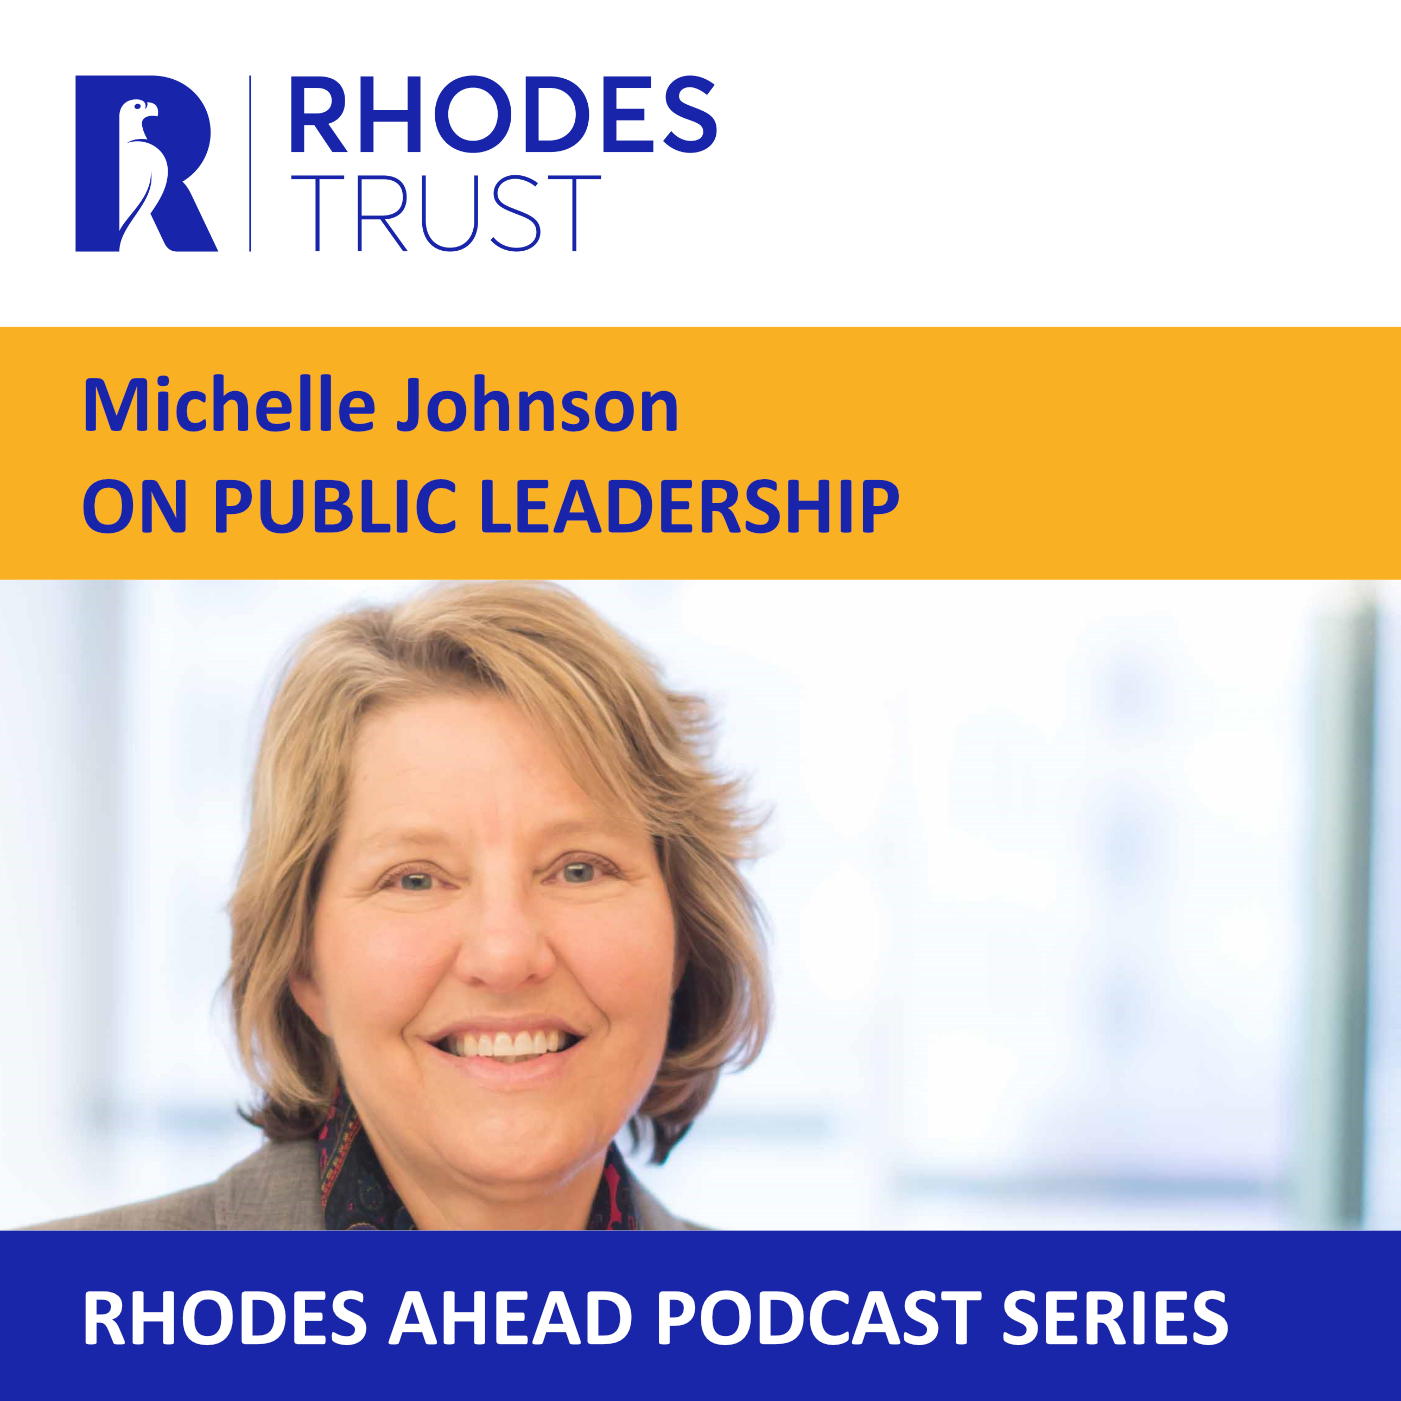 Michelle Johnson on Public Leadership